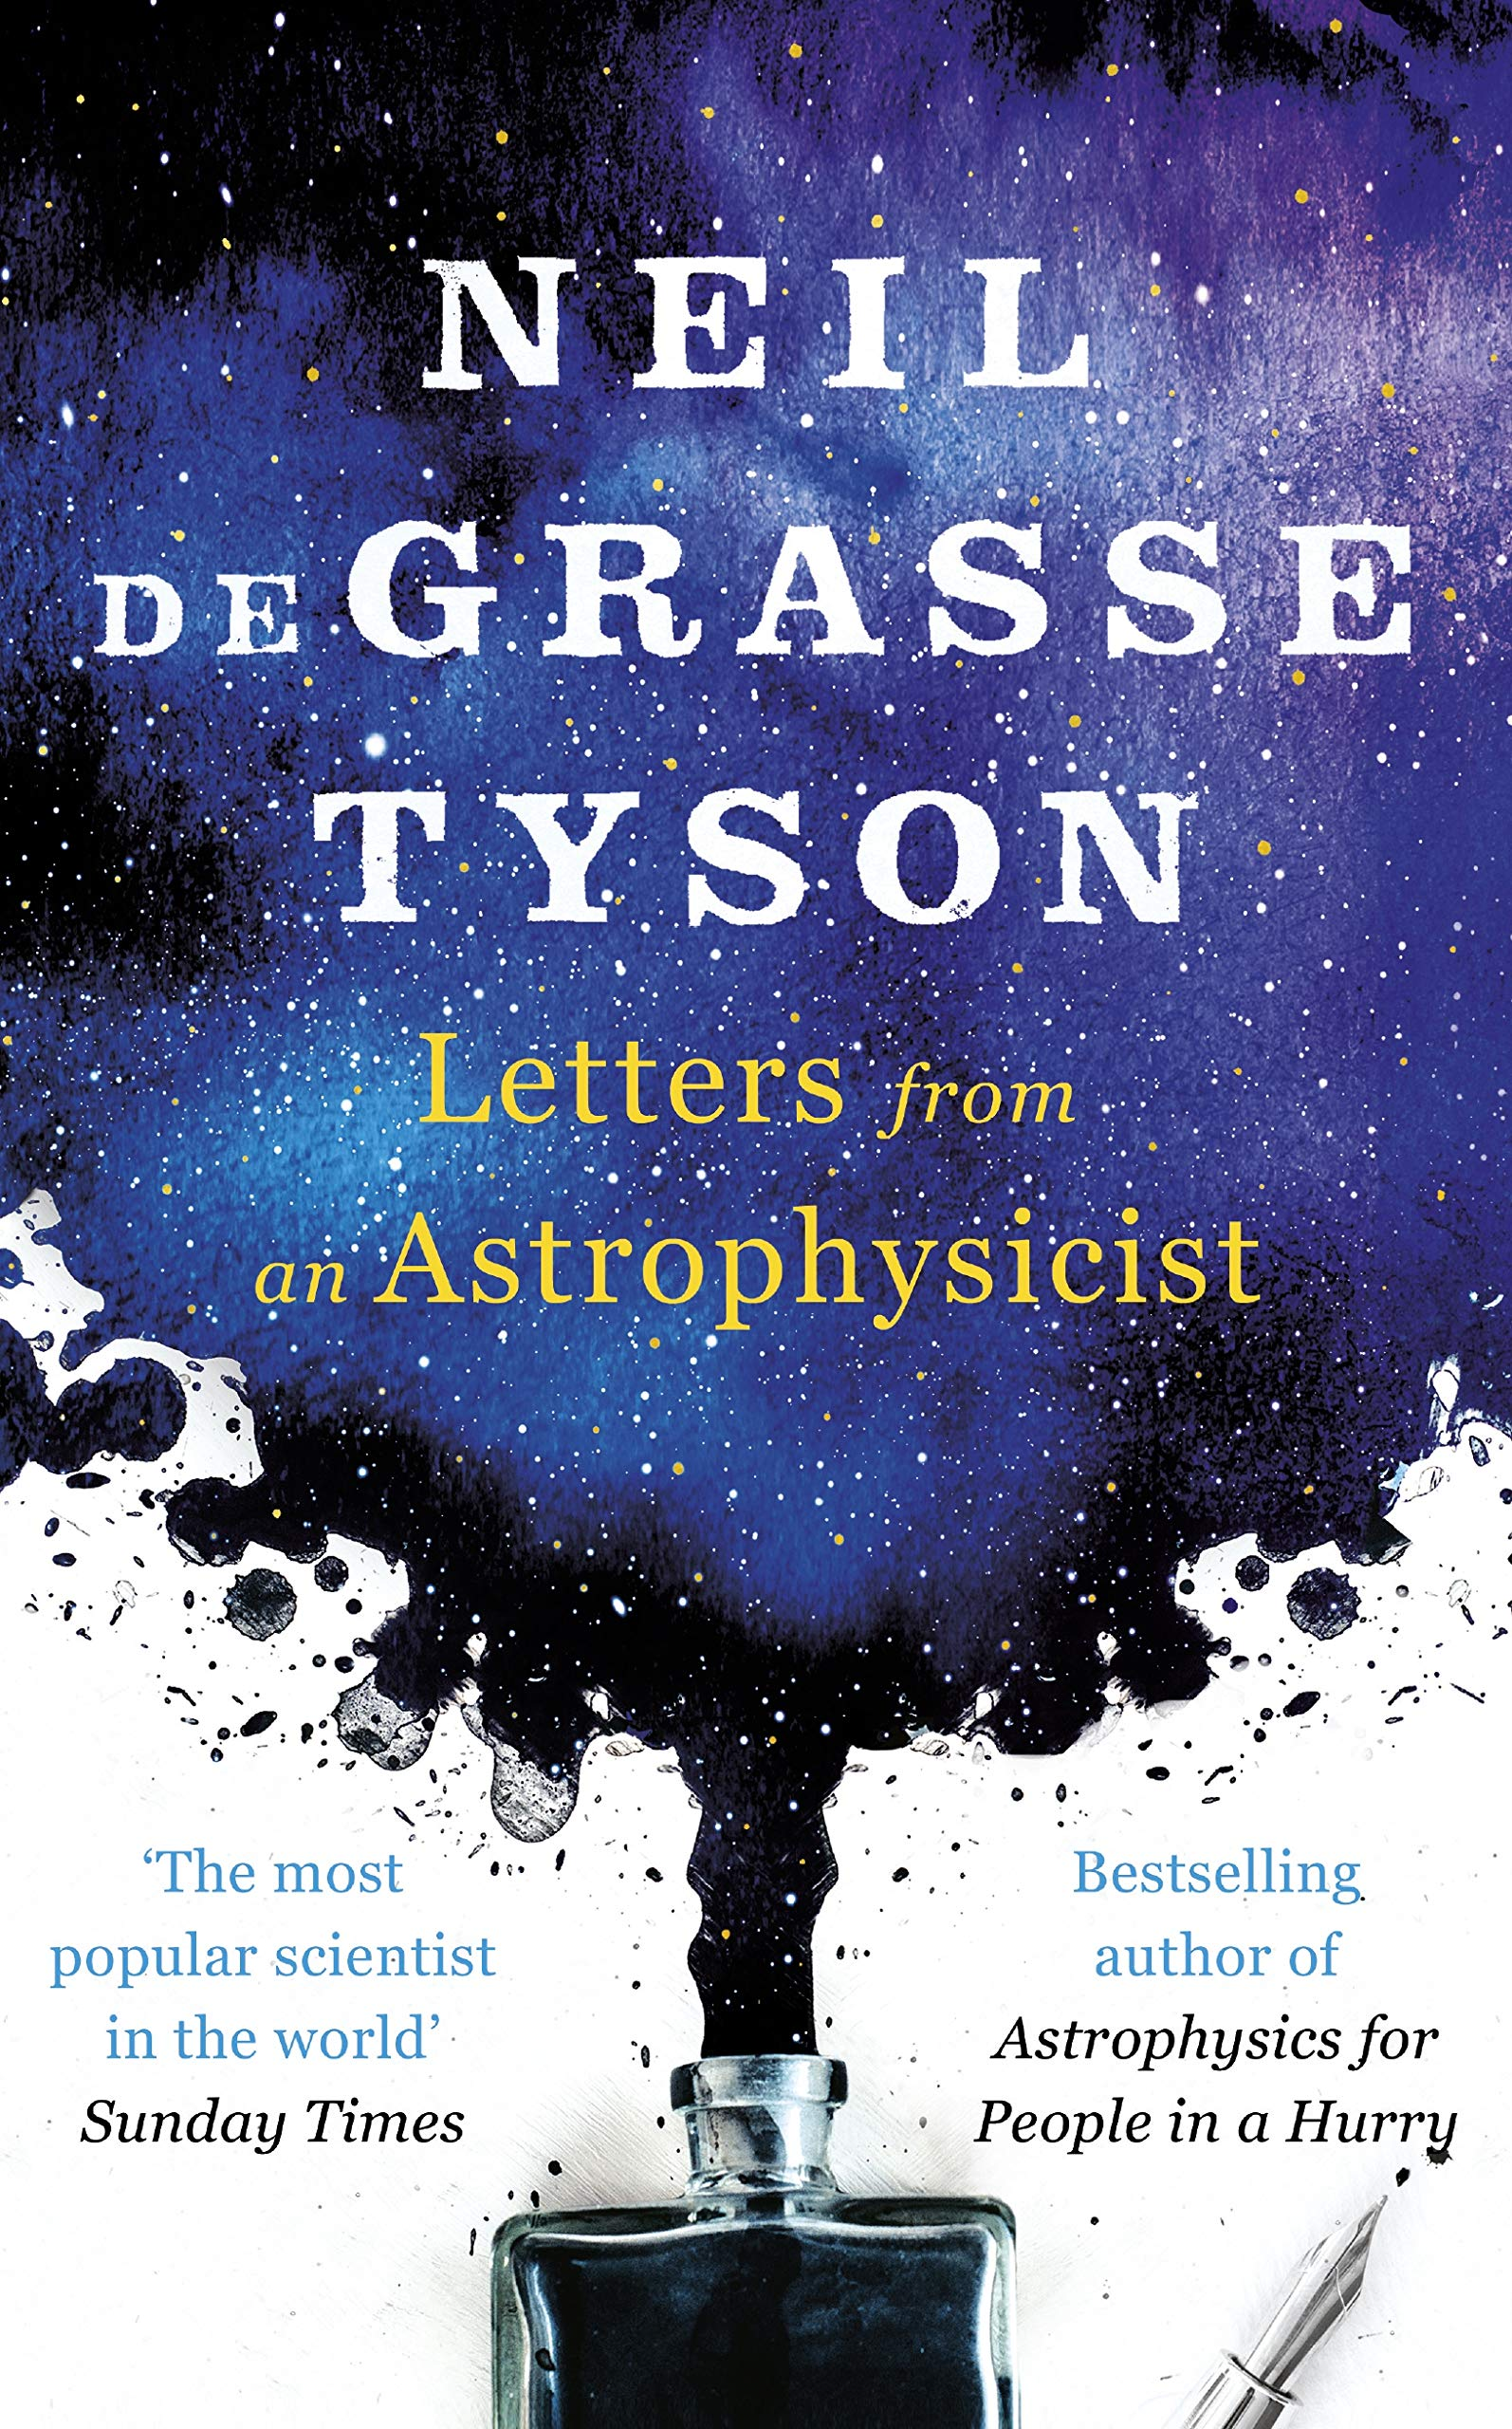 Letters from an Astrophysicist: Amazon.co.uk: Tyson, Neil deGrasse:  9780753553787: Books